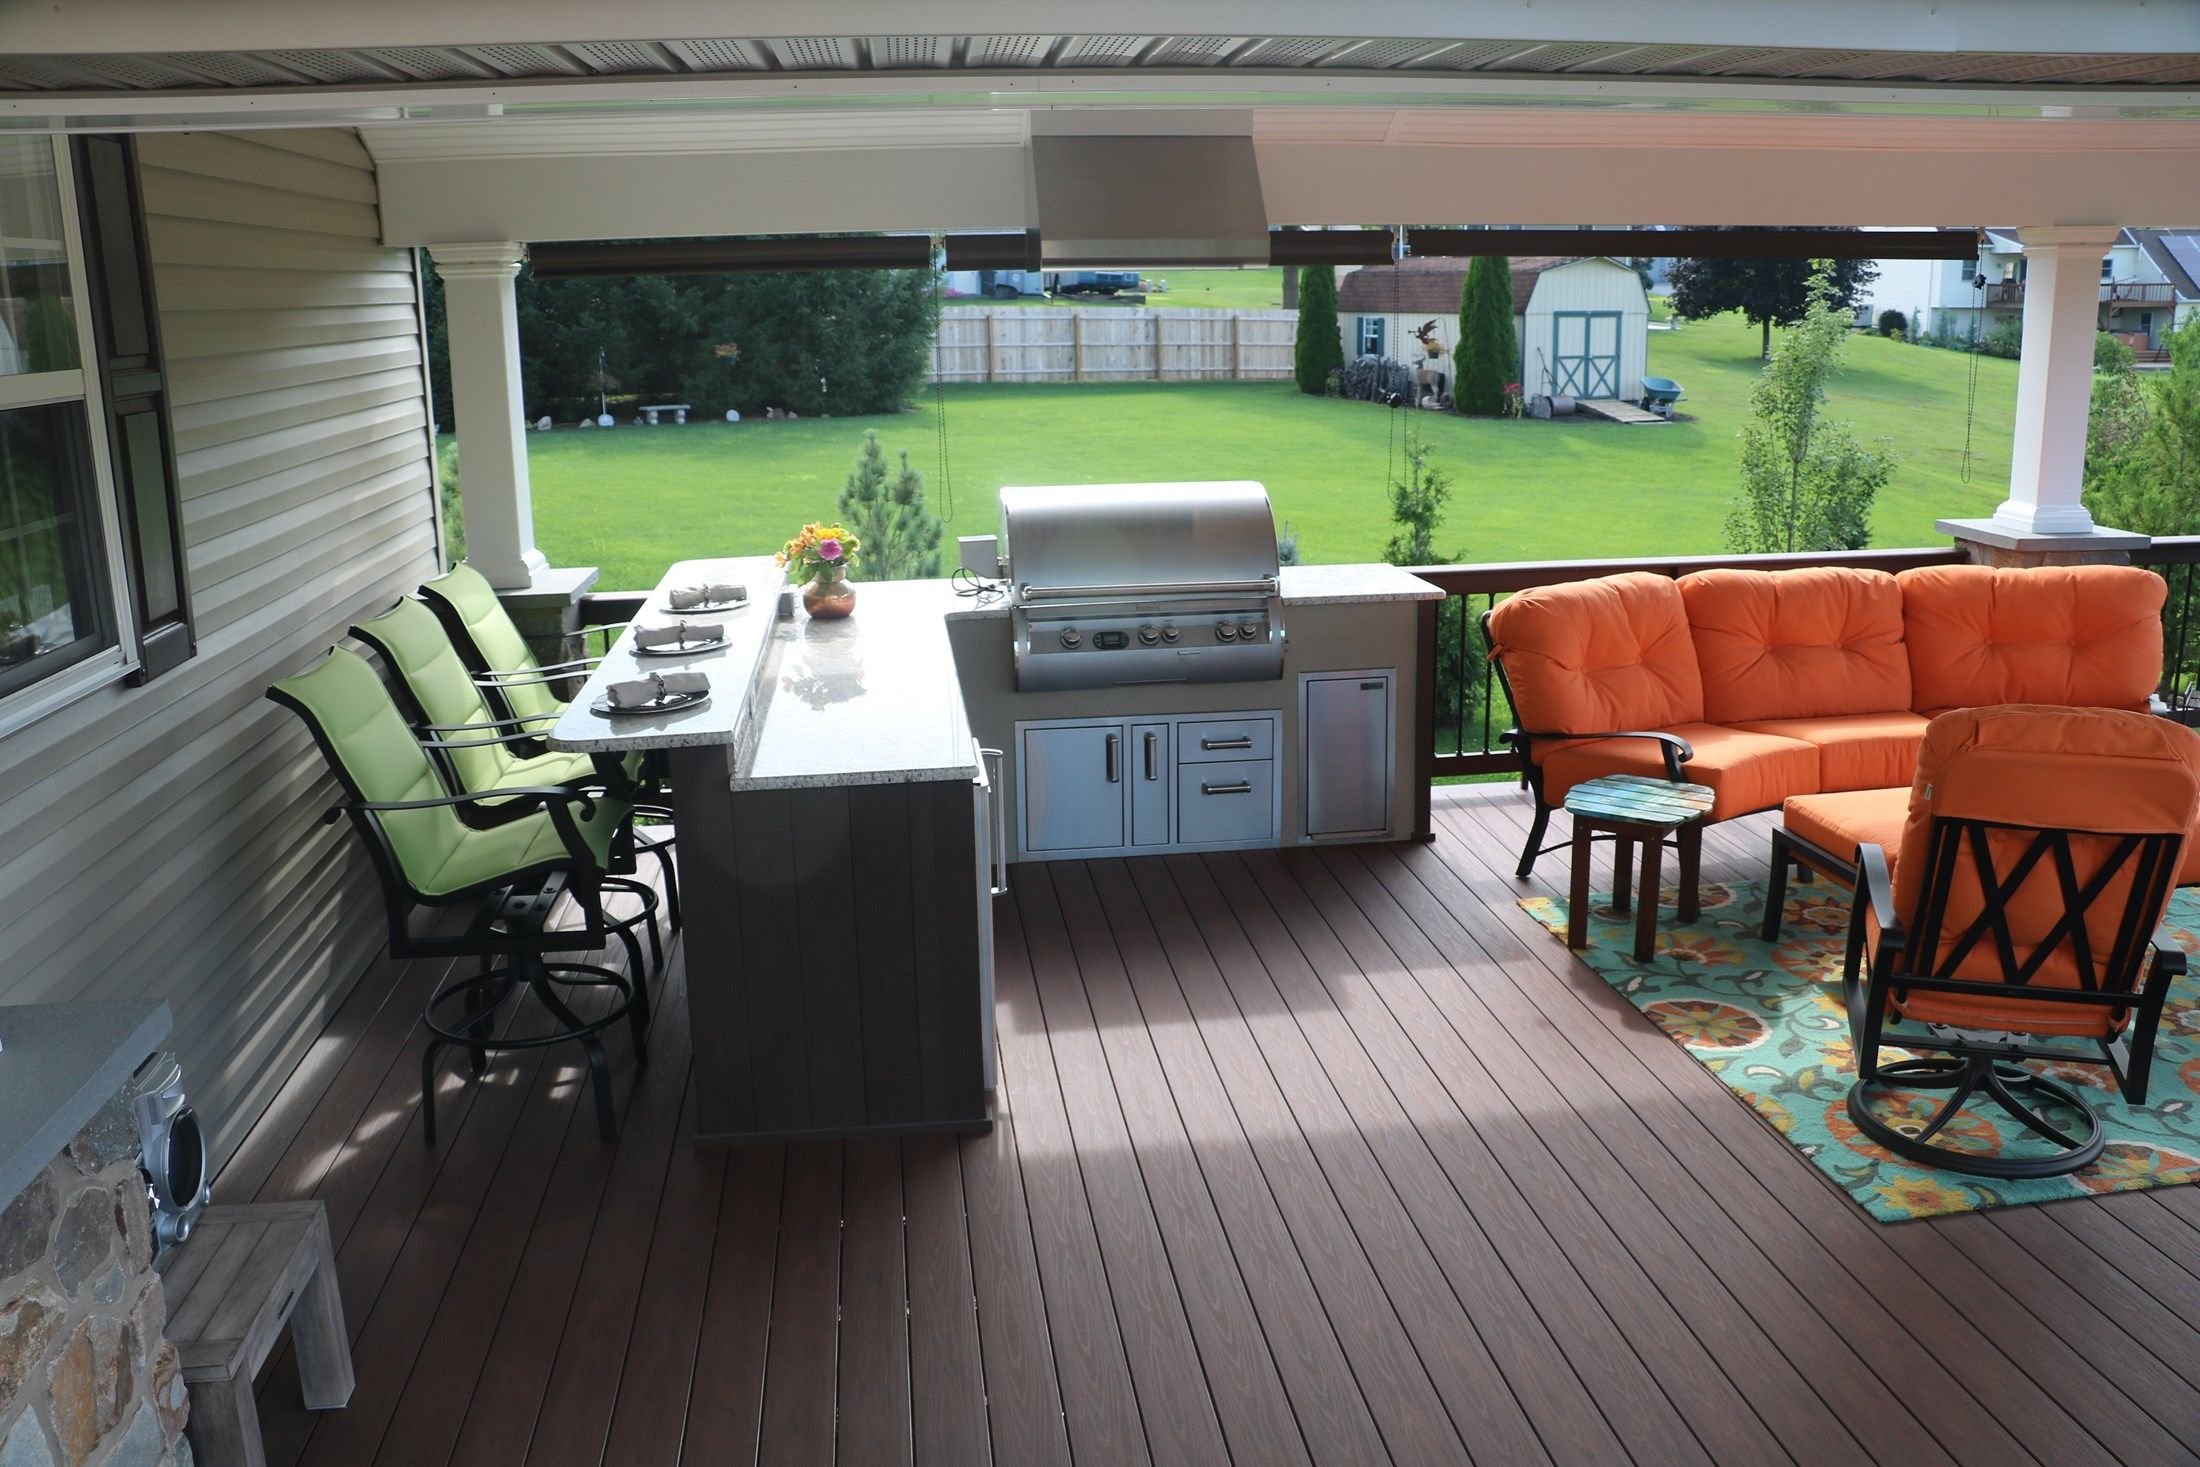 Timbertech Deck w/ Roof & Outdoor Kitchen - Picture 6730